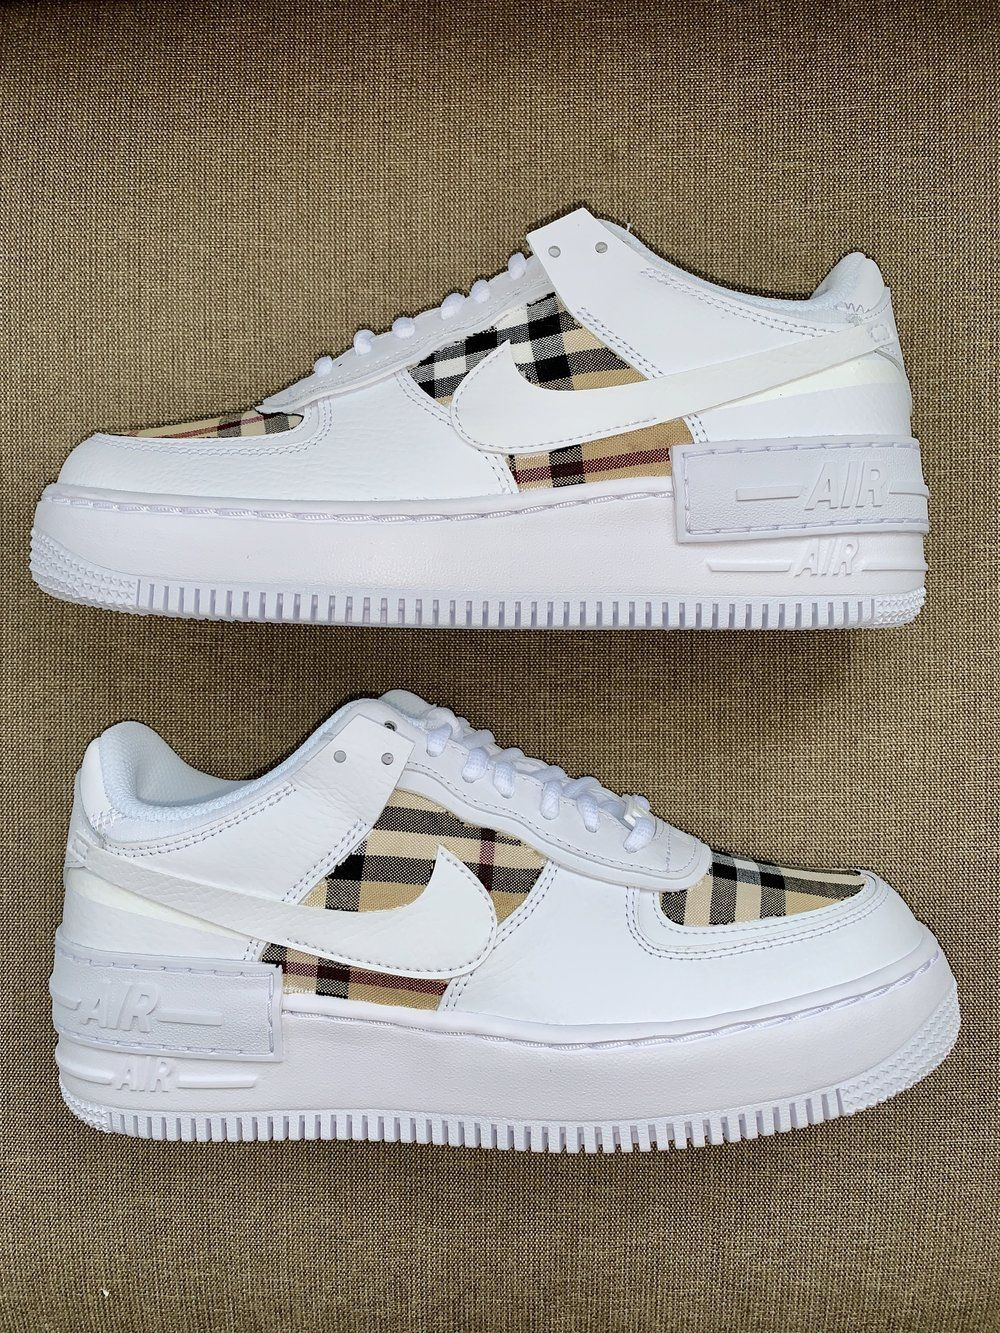 Burberry AF1s Shadow White in 2020 Nike air shoes, Hype